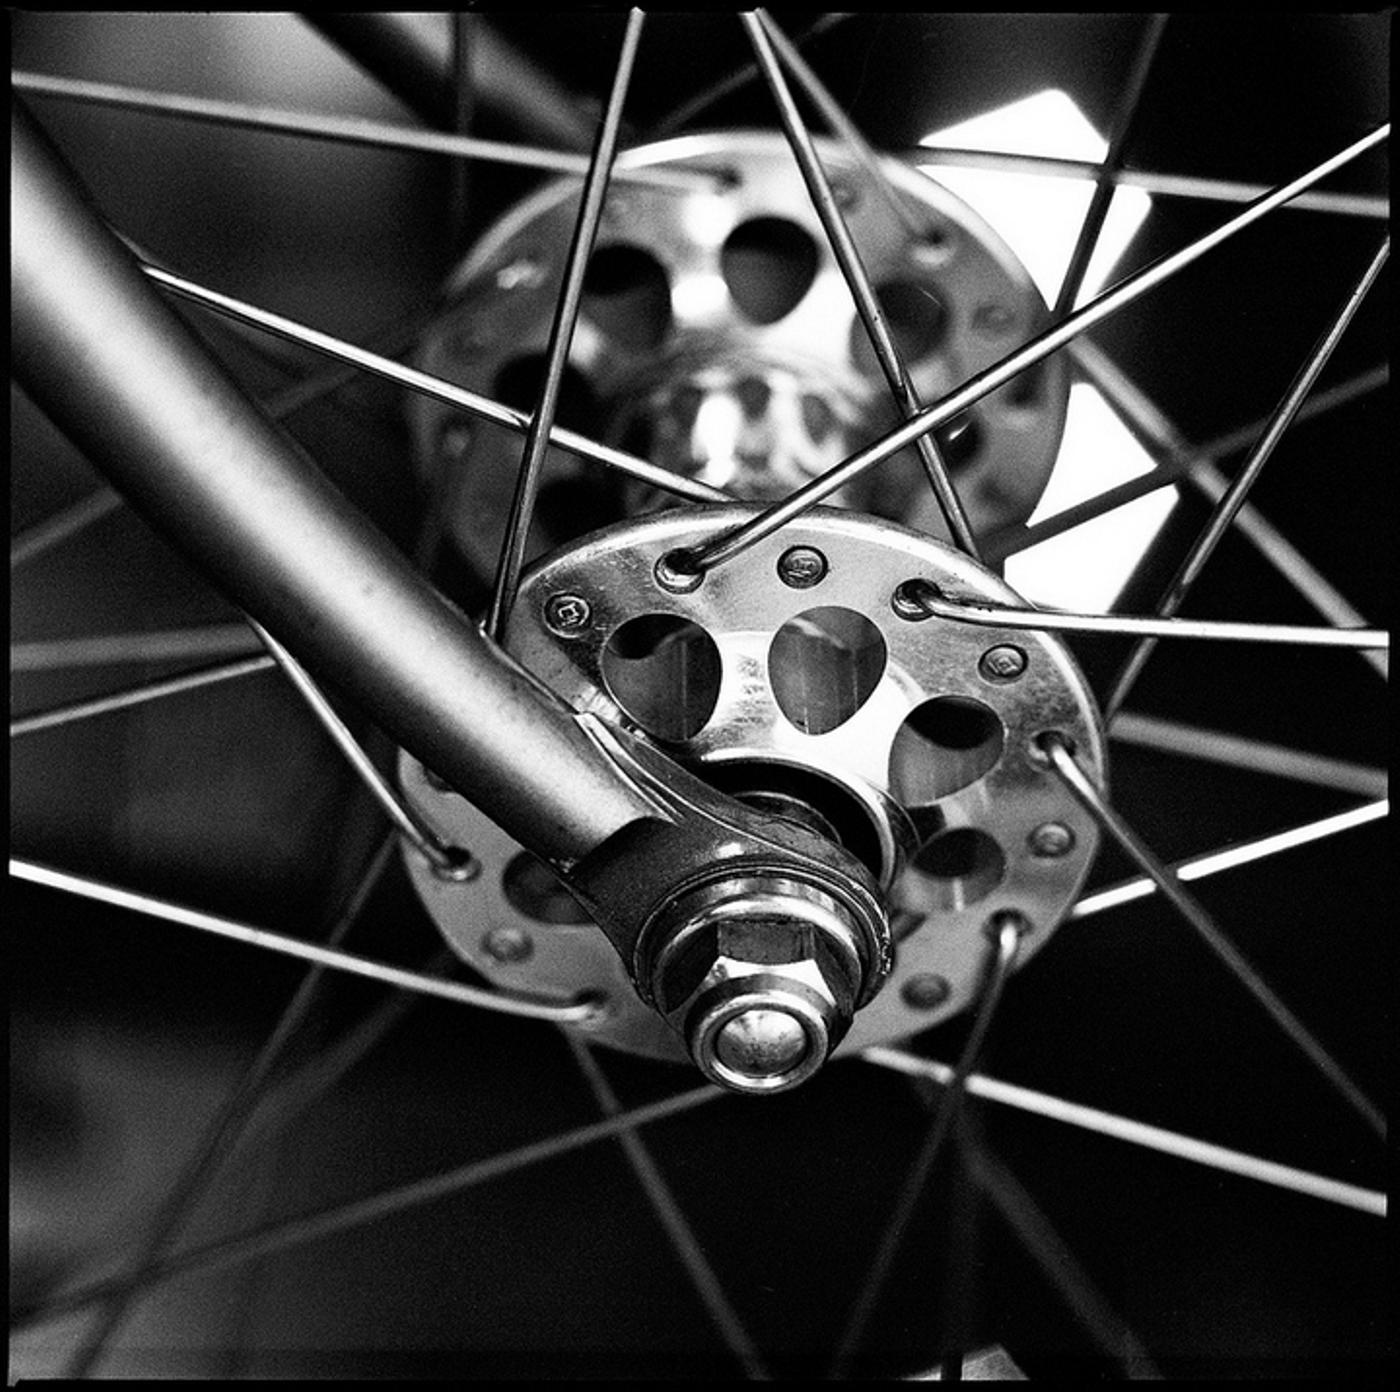 Damian Riehl: Bicycle Parts Study